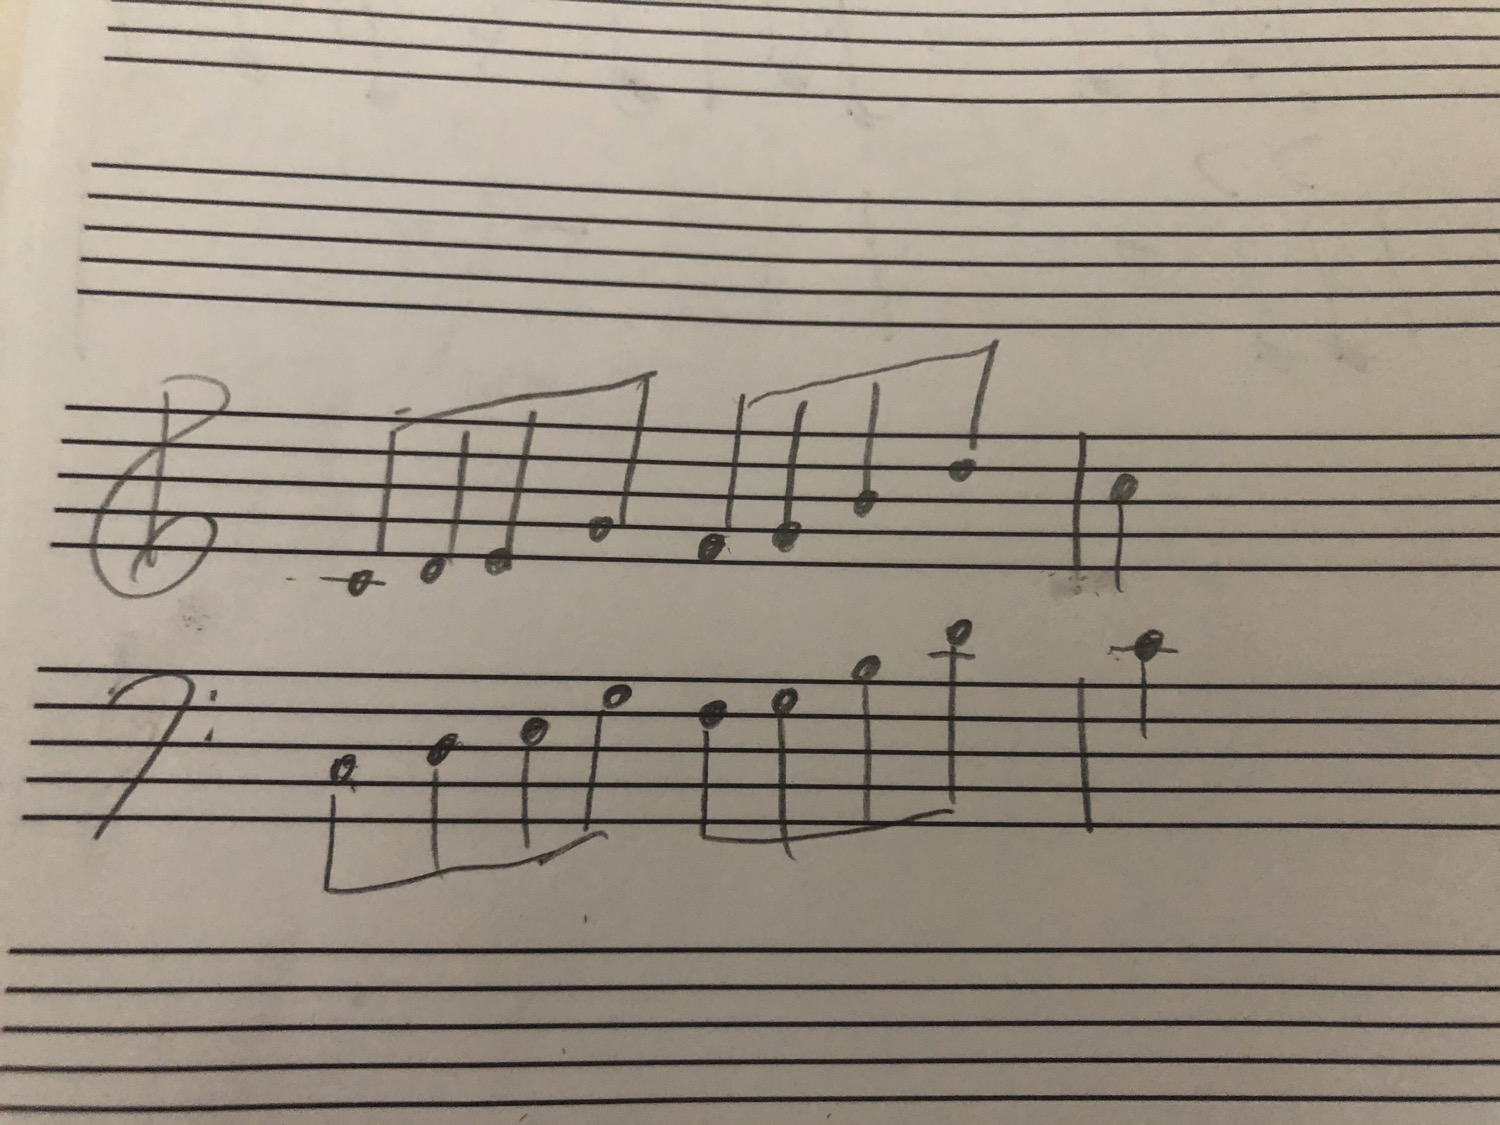 Quick thought: what to transcribe?